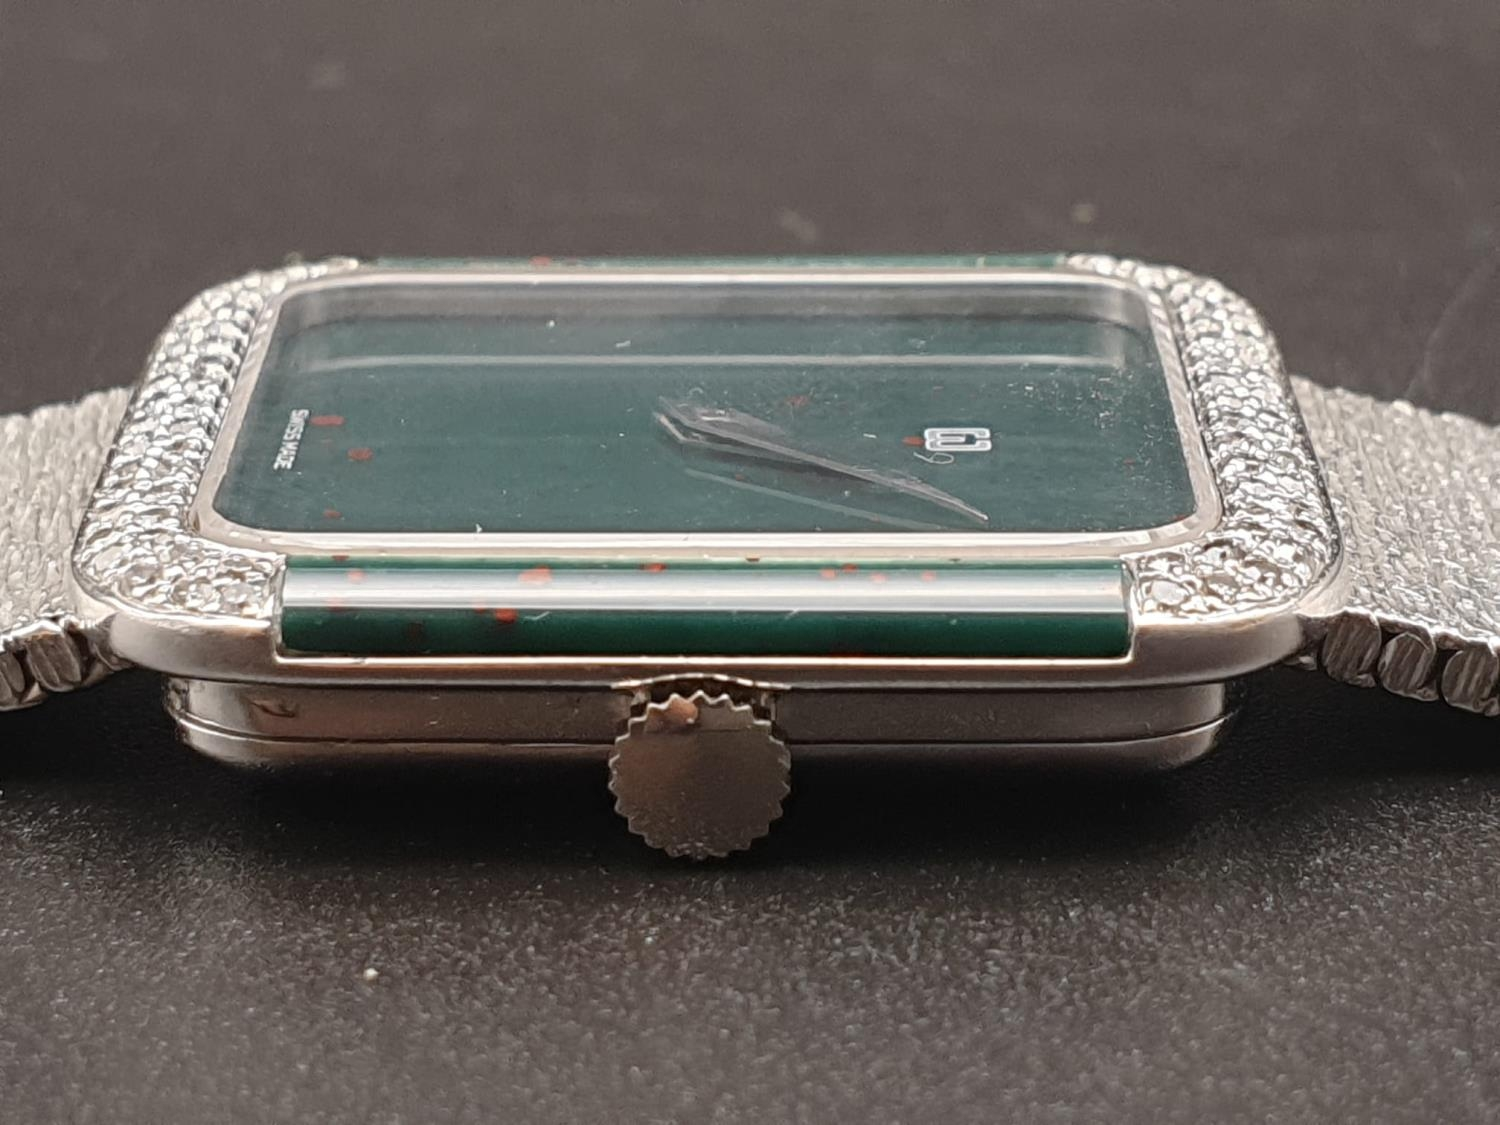 AN 18K WHITE GOLD DRESS WATCH WITH HALF DIAMOND BEZEL AND SOLID GOLD STRAP. 26MM - Image 12 of 12